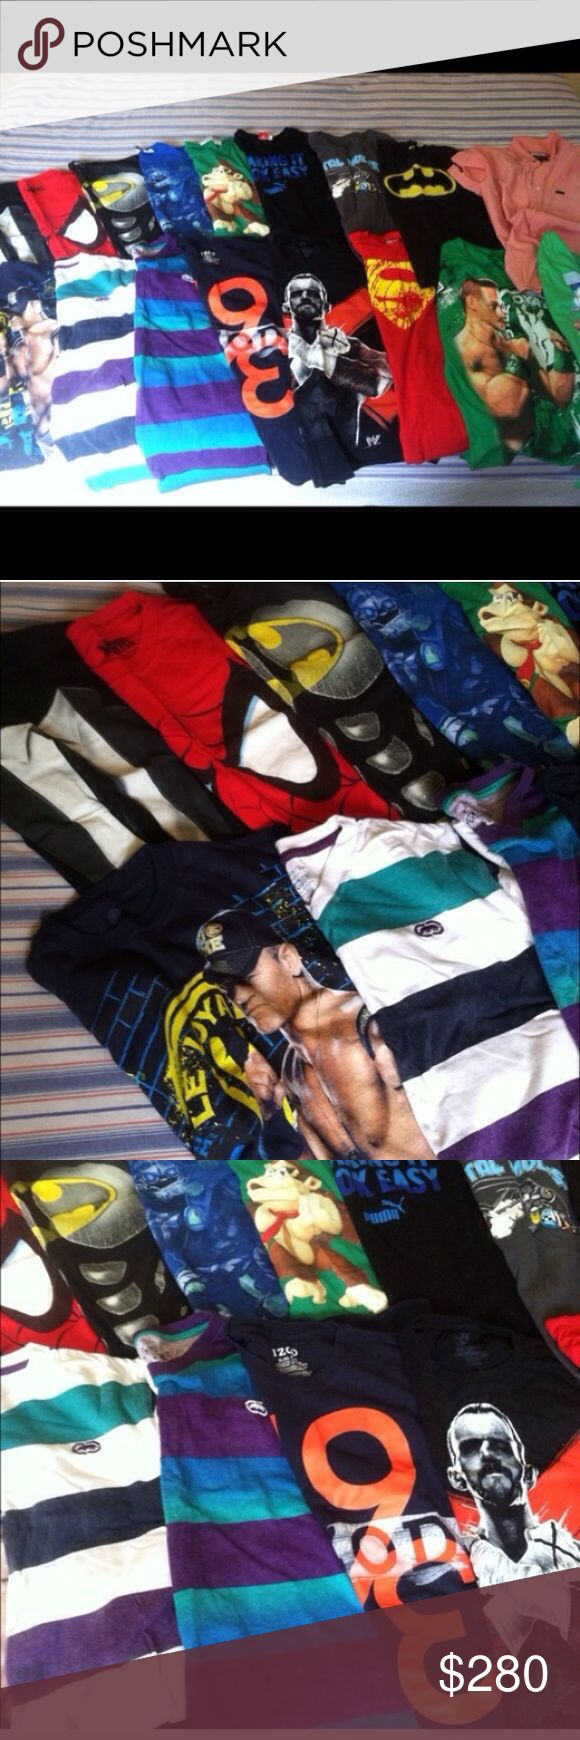 17 DESIGNER Tops💛💙💜💚❤️💛💙💜💚❤️💛💙💜💚❤️💛💙 17 tops. 2 WWE tops alone was over $100. Boys XL X-Large 18/20 WWE RVCA Puma ECKO Spider-Man Batman Skylanders Donkey Kong John Cena LRG Marvel Izod CM Punk Metal Mulisha graphic tees Colorful Like new Red RVCA shirt next to Batman top is a button down Collection rare hard to find vintage colorful casual dressy Various brands cool tuxedo suit shirt wrestling stripe character suit dress surfer skater Pokemon star wars jersey uniform Puma…